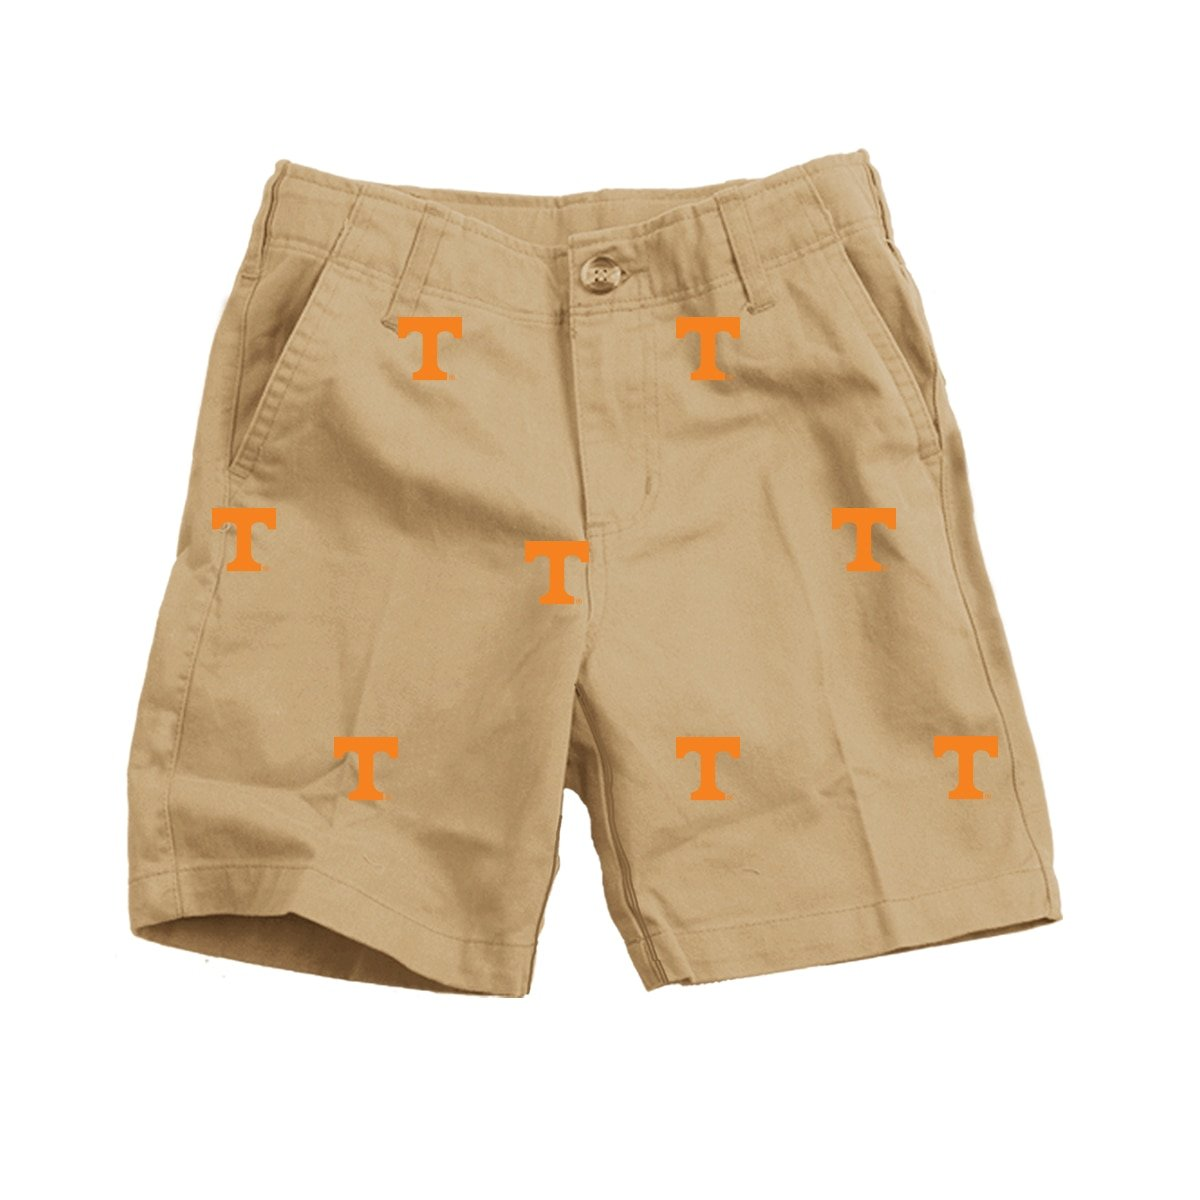 Wes and Willy Tennesee Volunteers Embroidered Twill Short